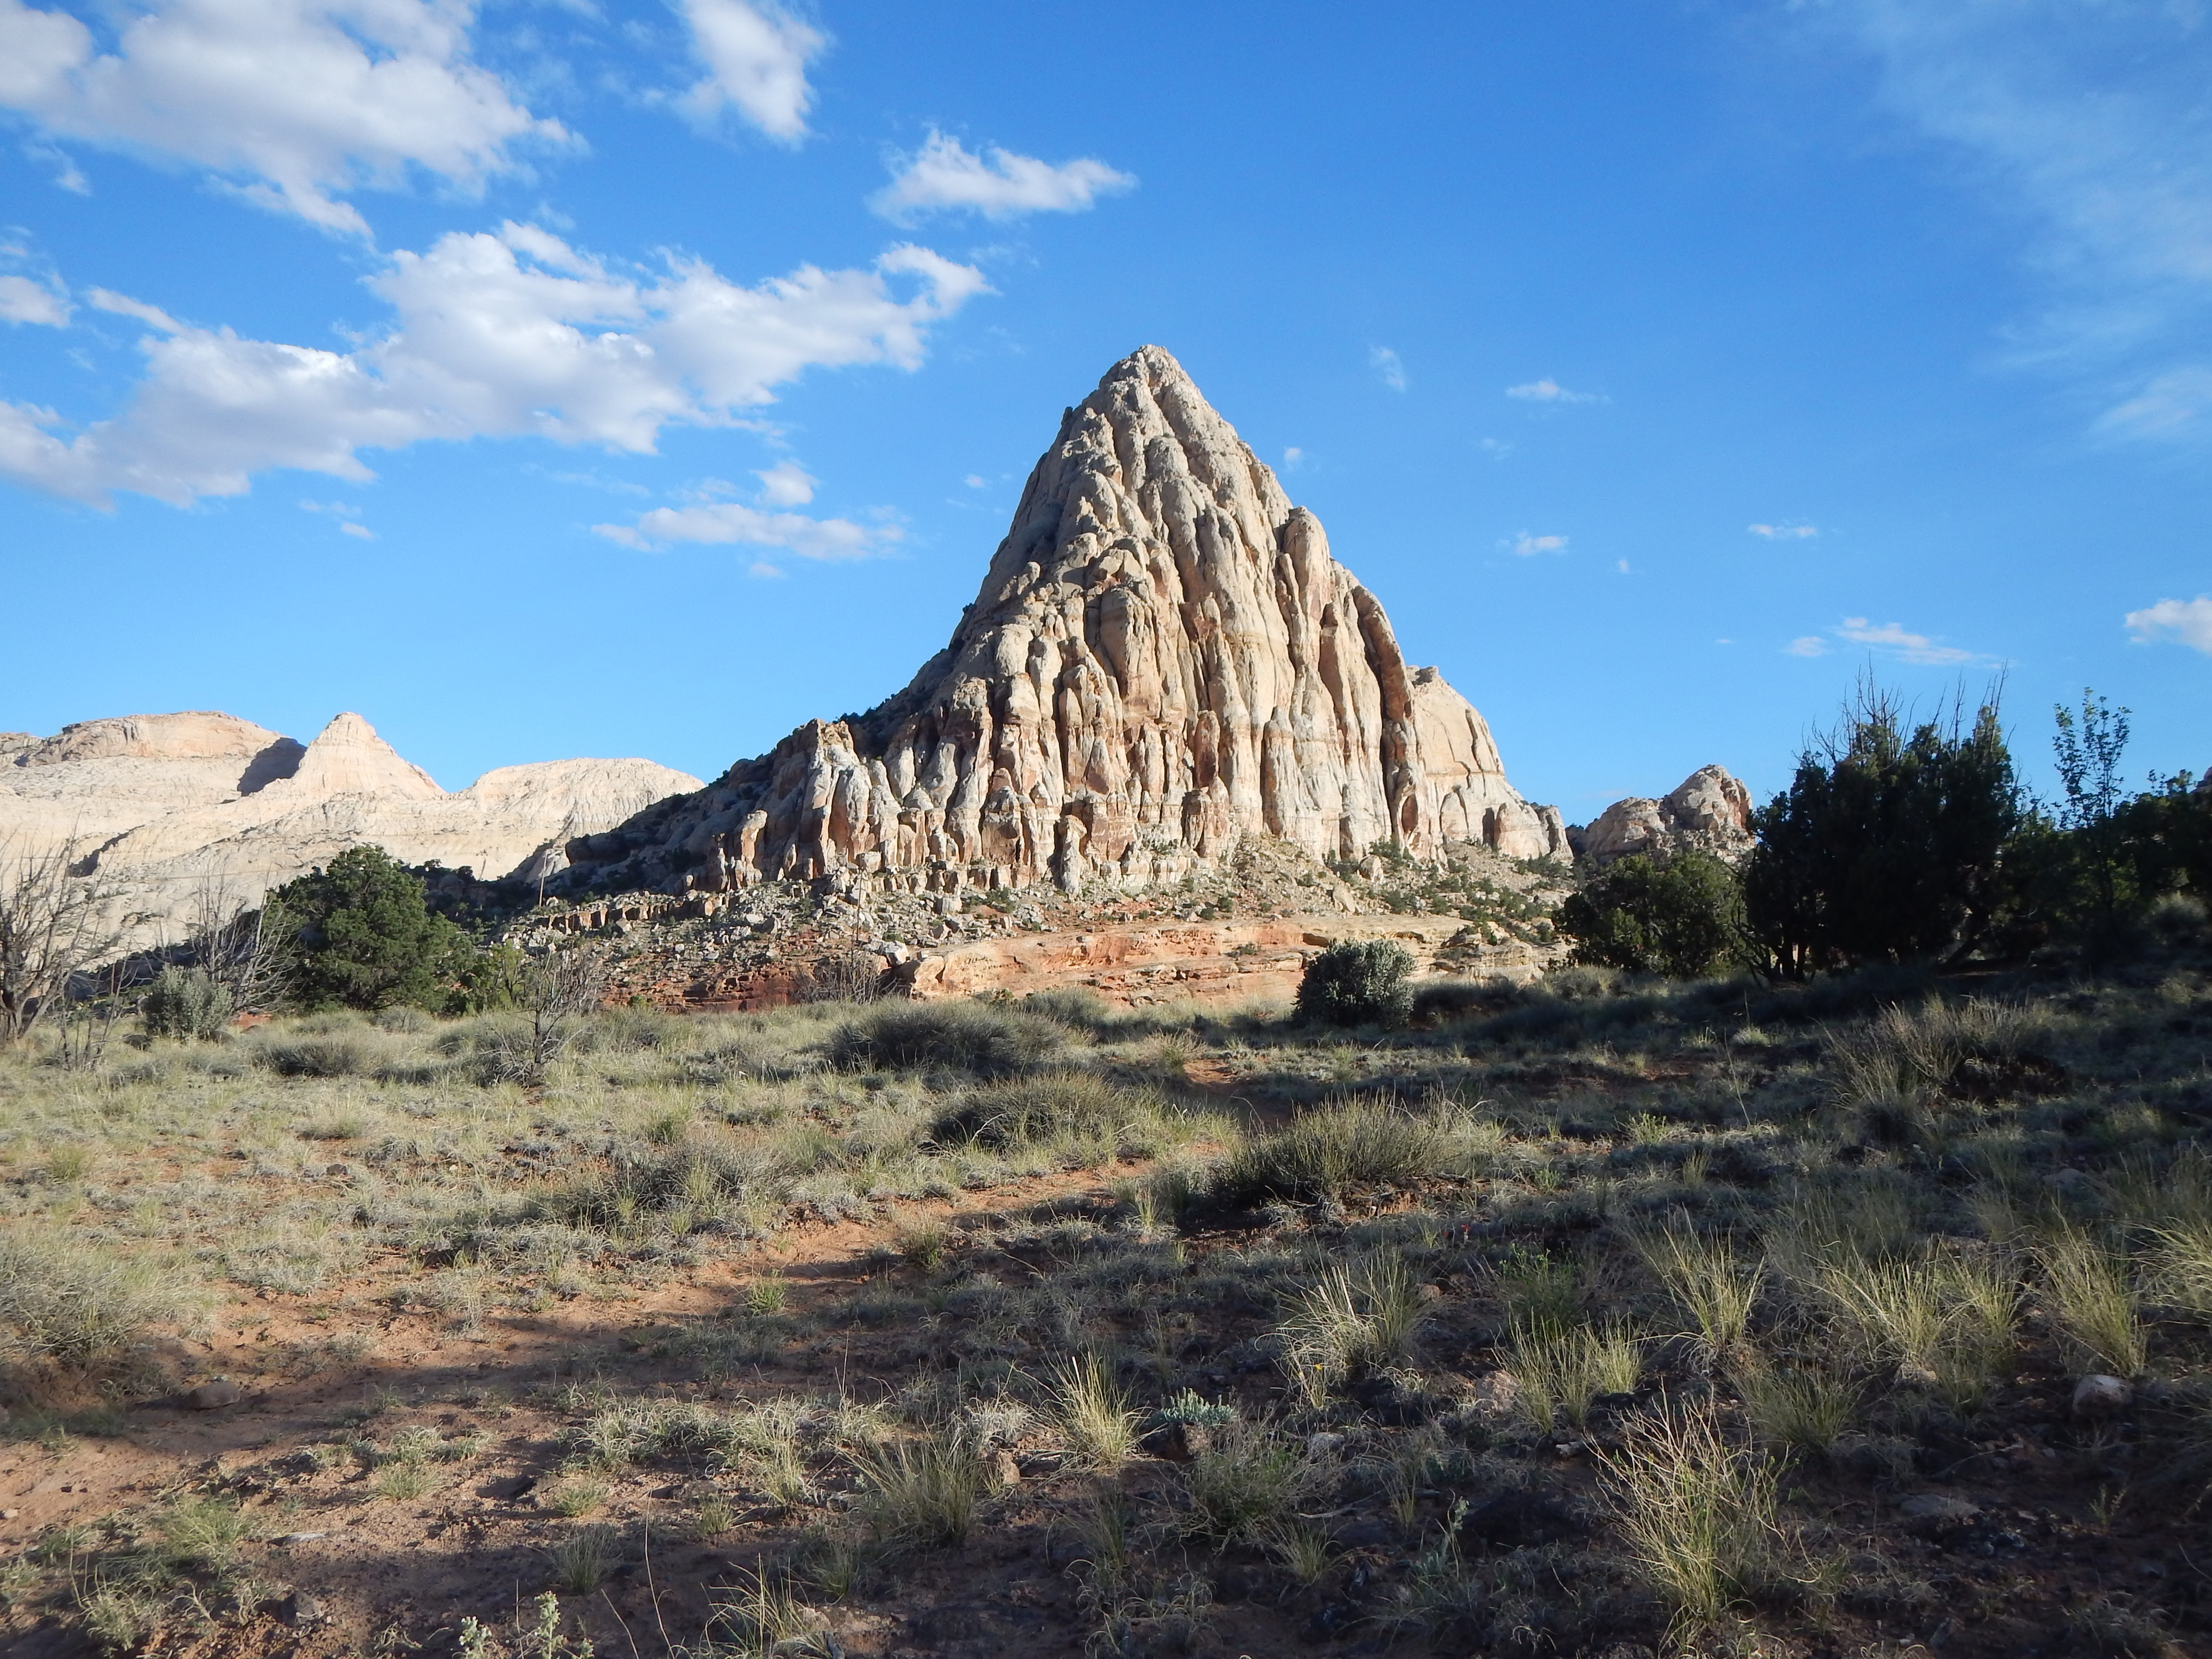 Photo: One of many striking rock formations in the park.